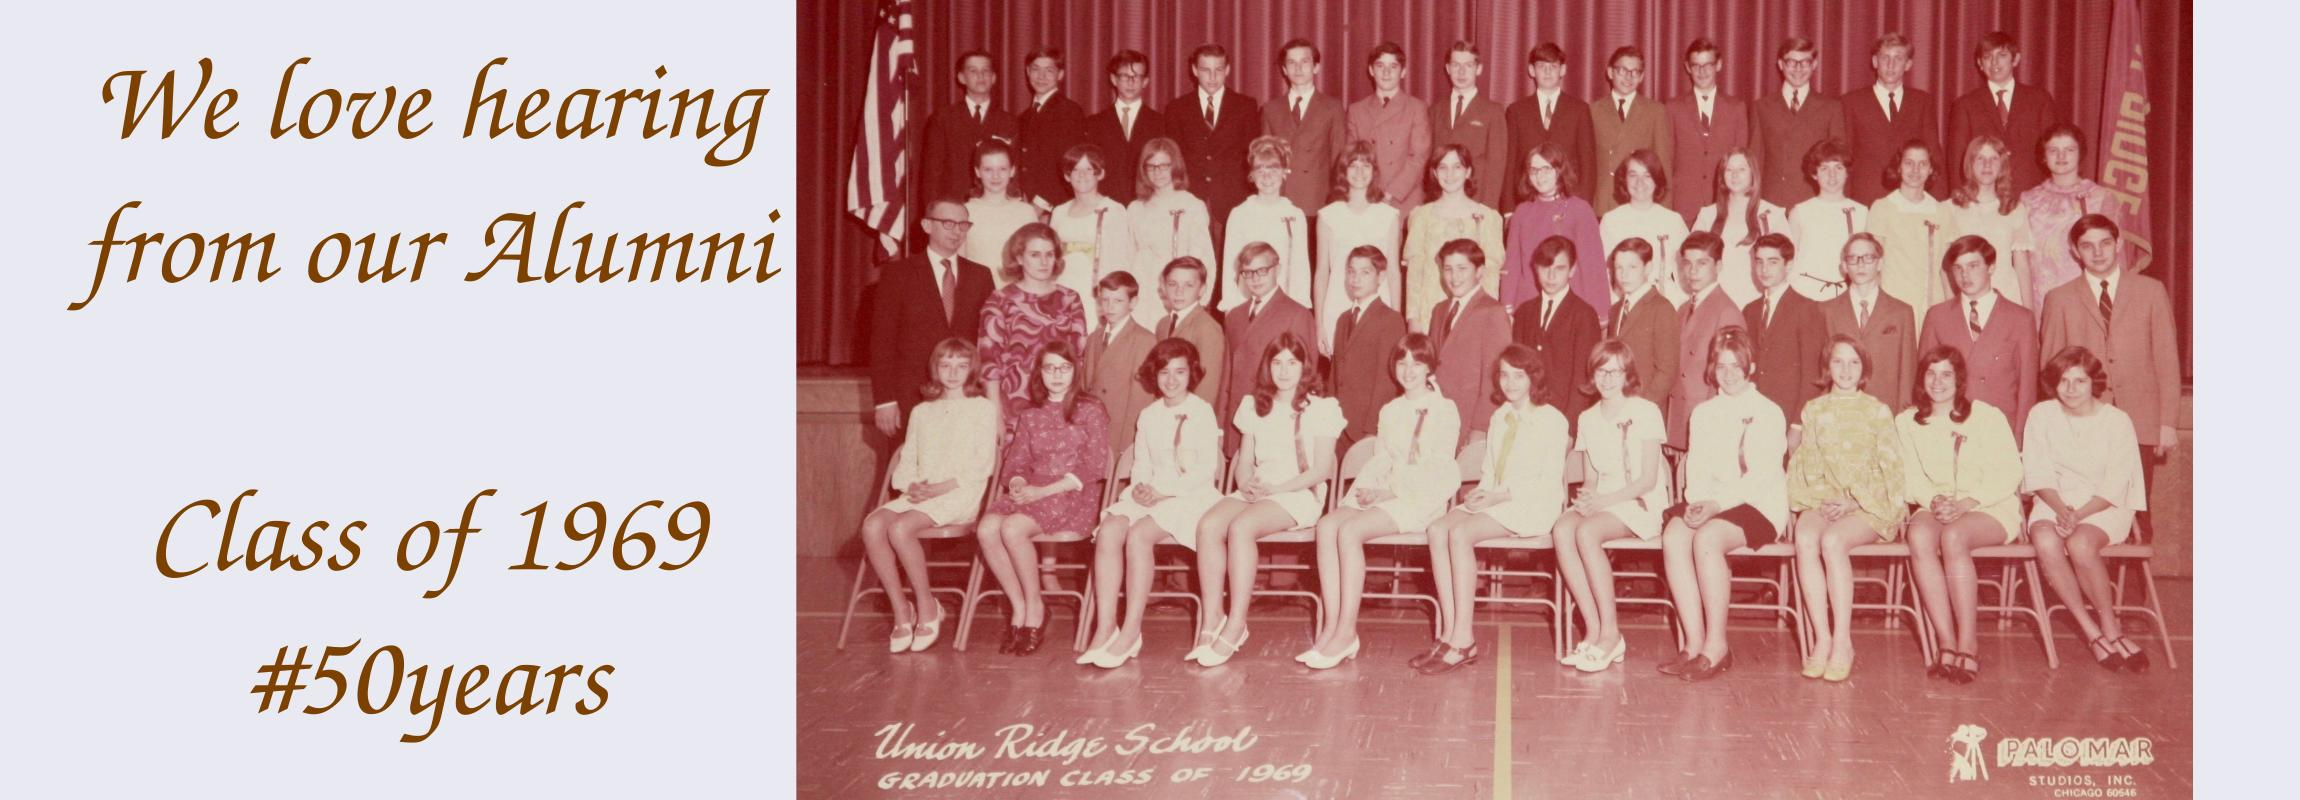 Celebrating our Union Ridge Class of 1969!